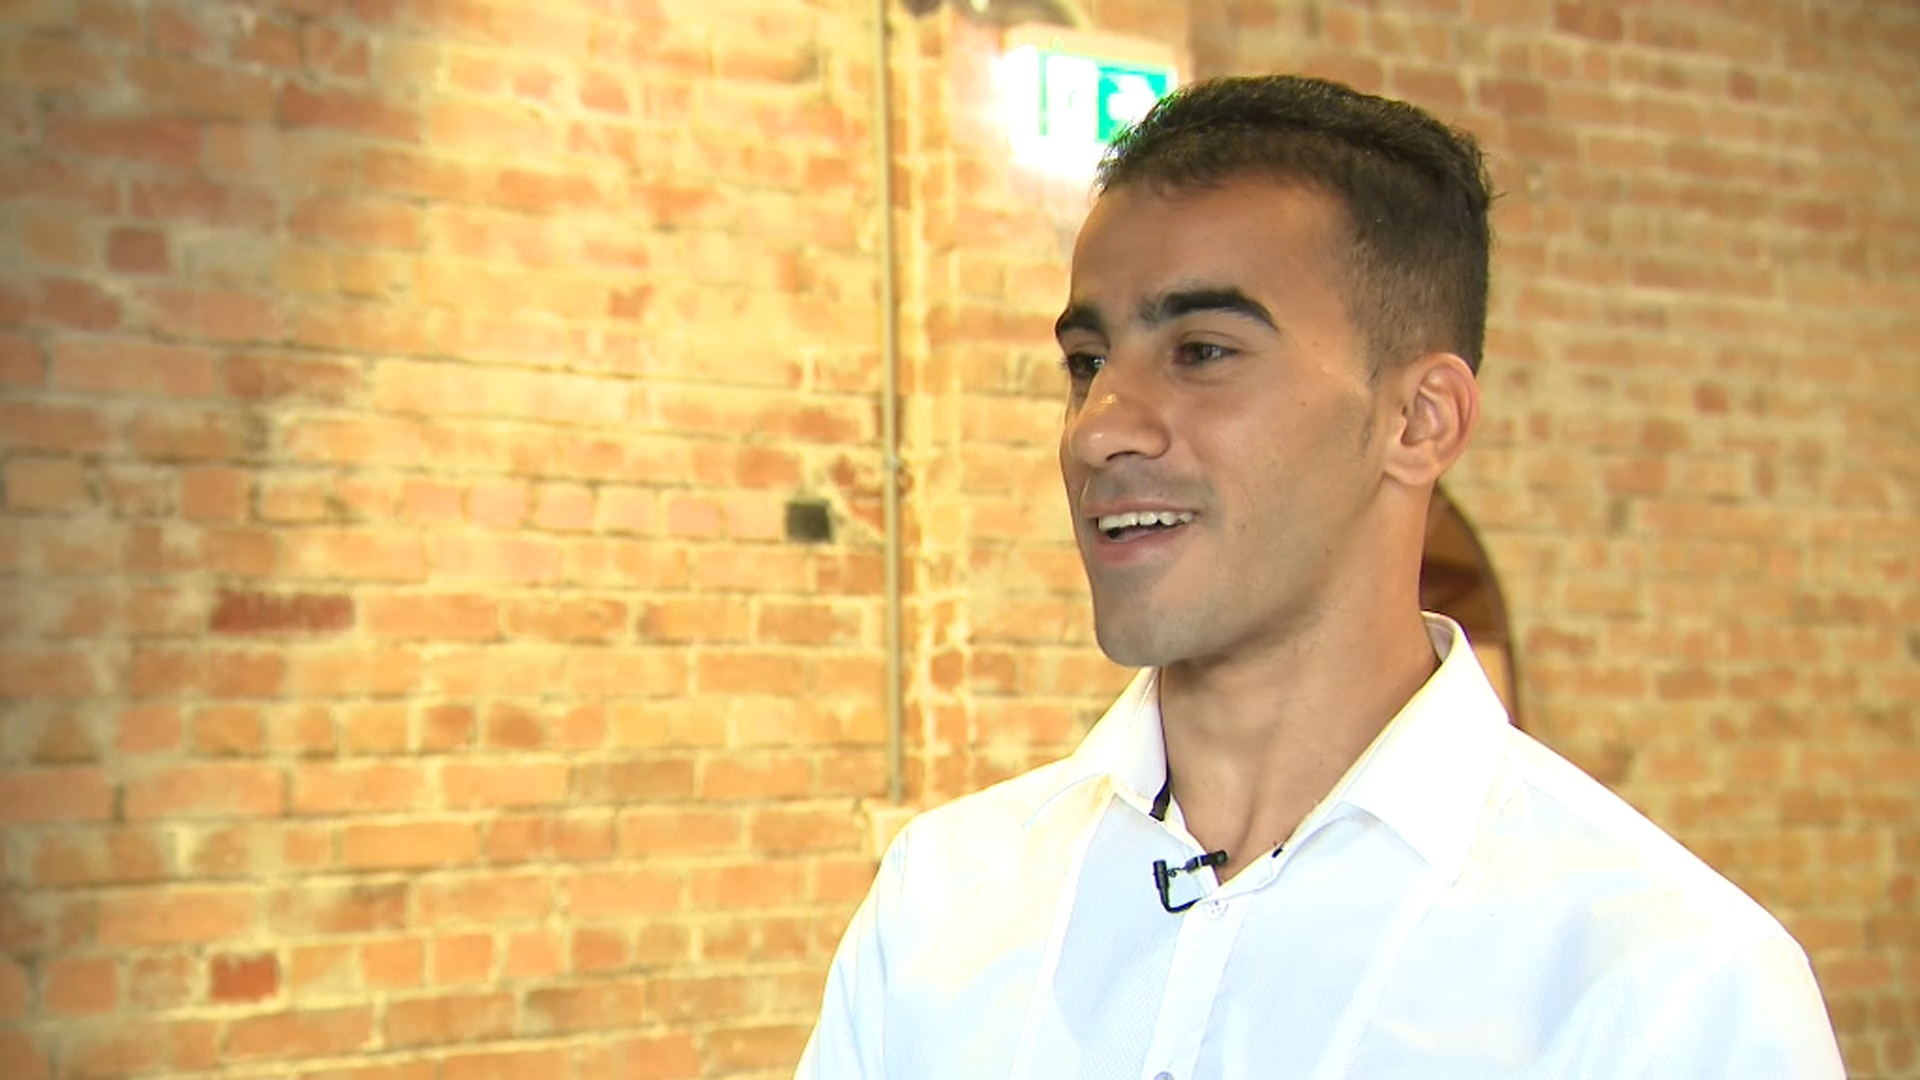 Hakeem Al-Araibi says he's happy to finally be home with his wife.